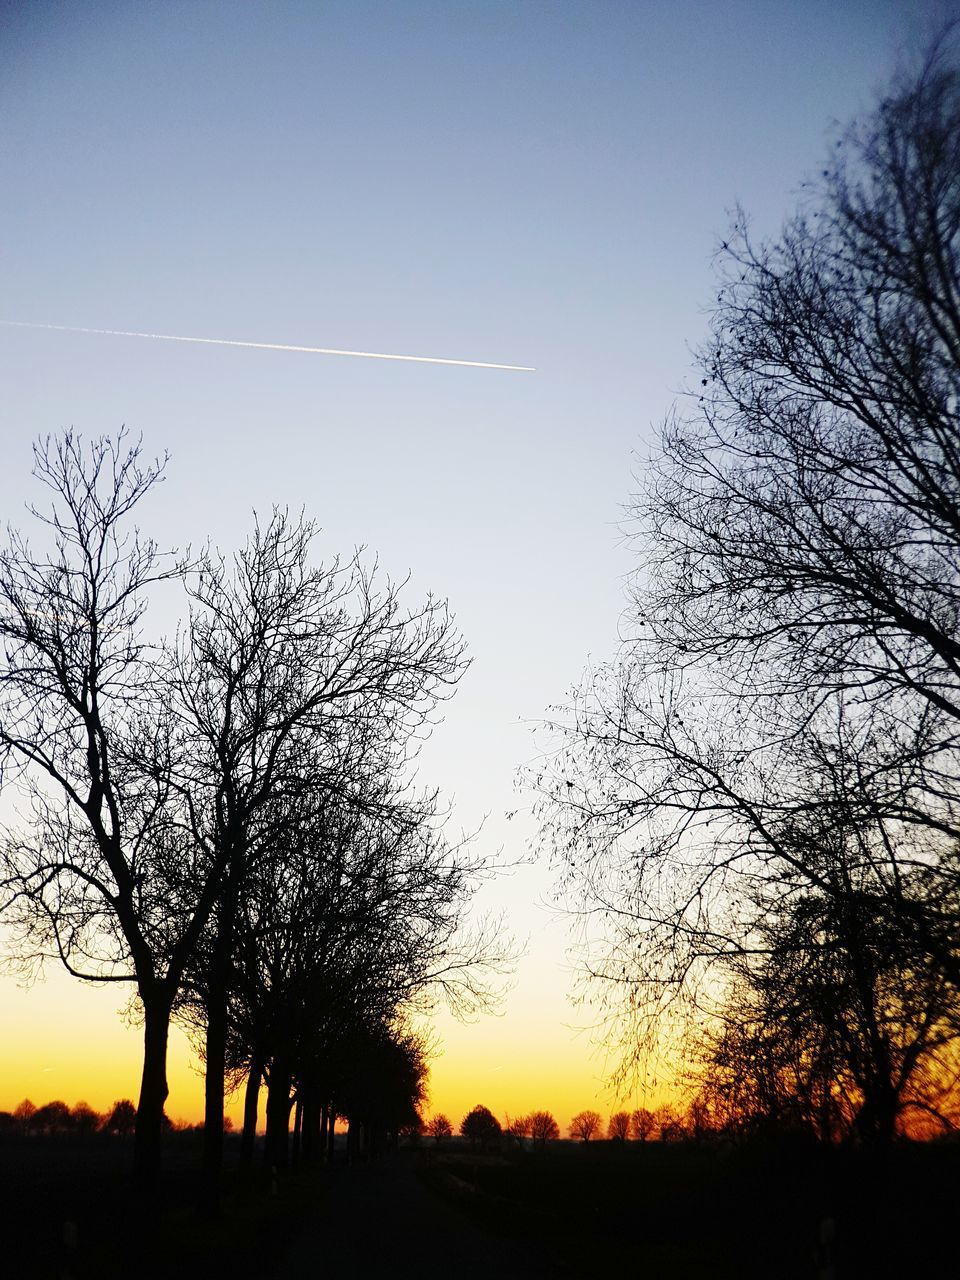 silhouette, tree, vapor trail, beauty in nature, scenics, sunset, nature, bare tree, majestic, contrail, tranquility, tranquil scene, no people, landscape, sky, outdoors, branch, day